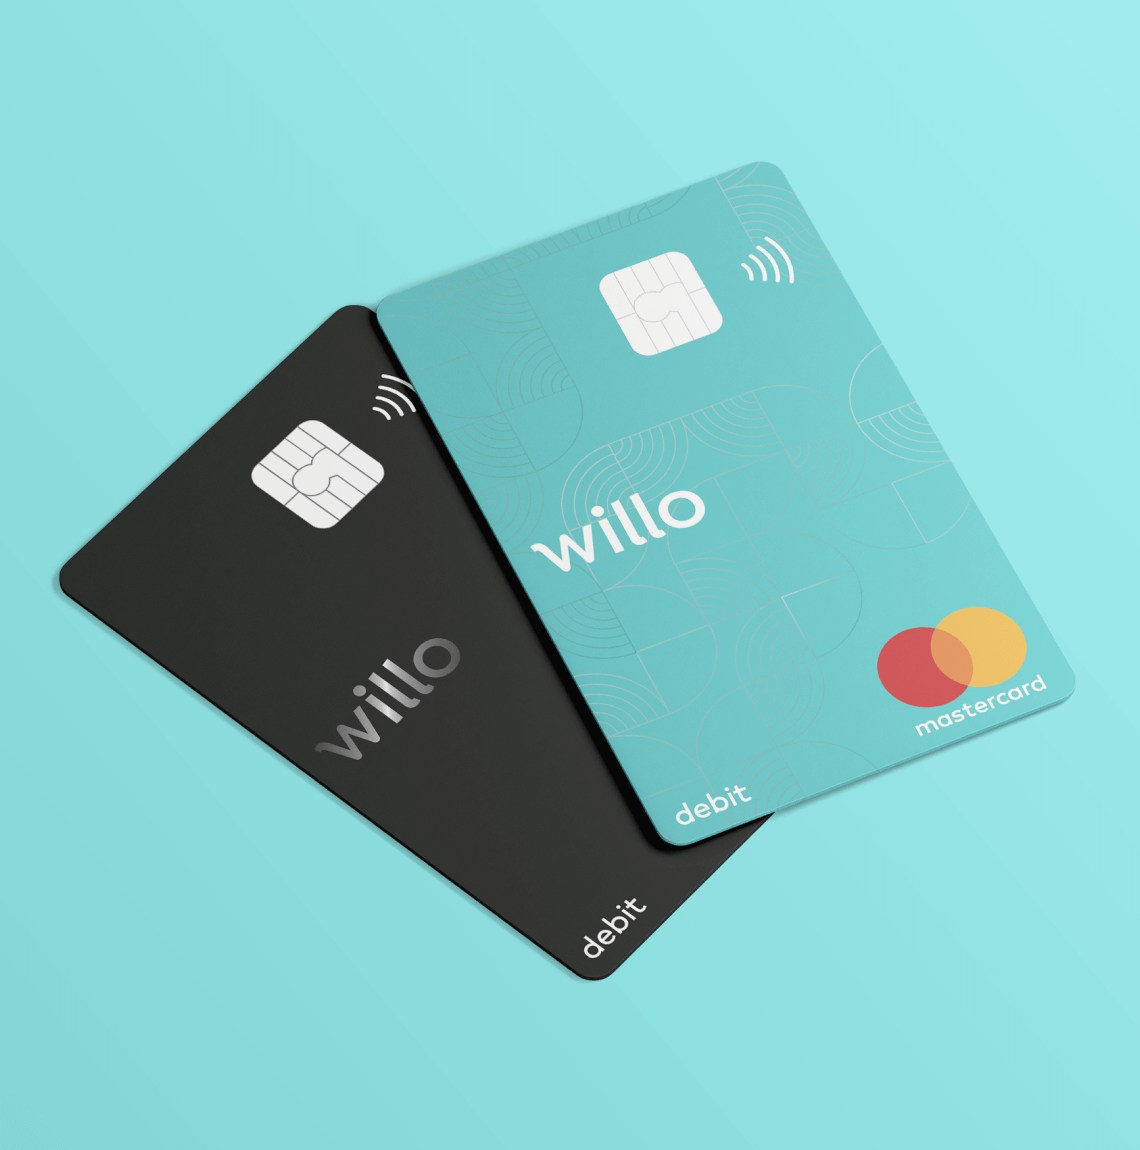 Two Willo debit cards